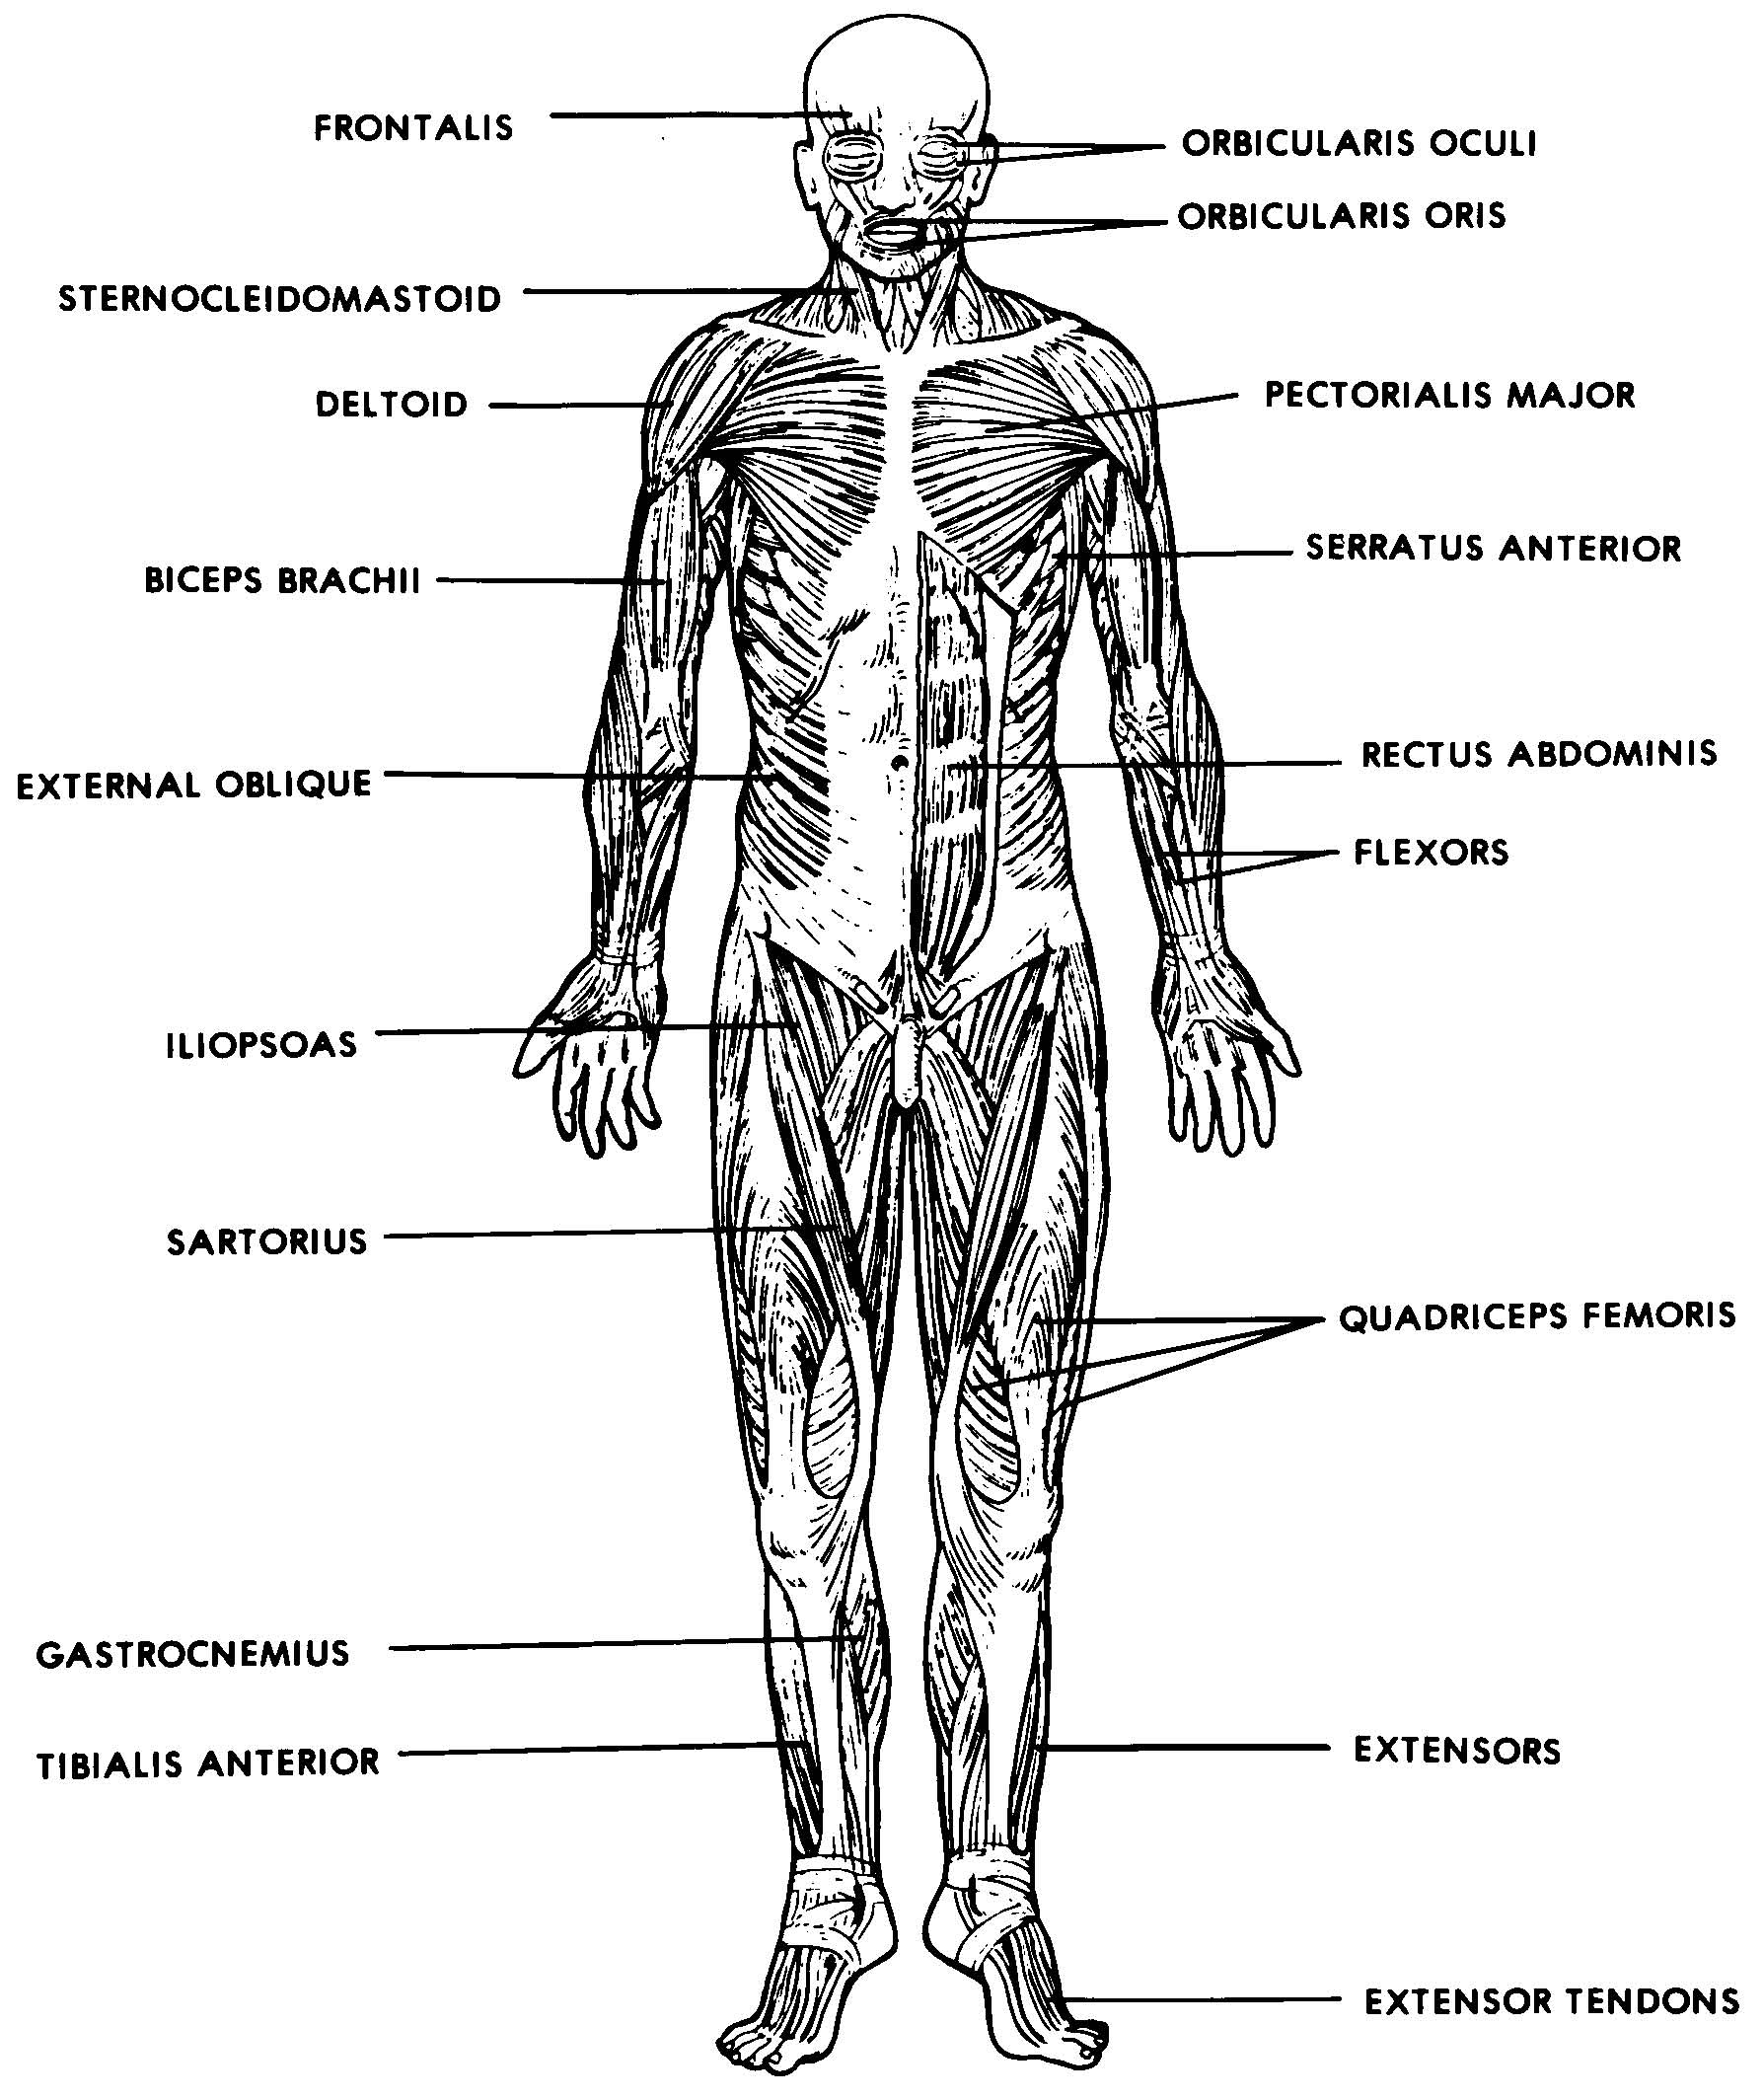 images 05 muscular system basic human anatomy